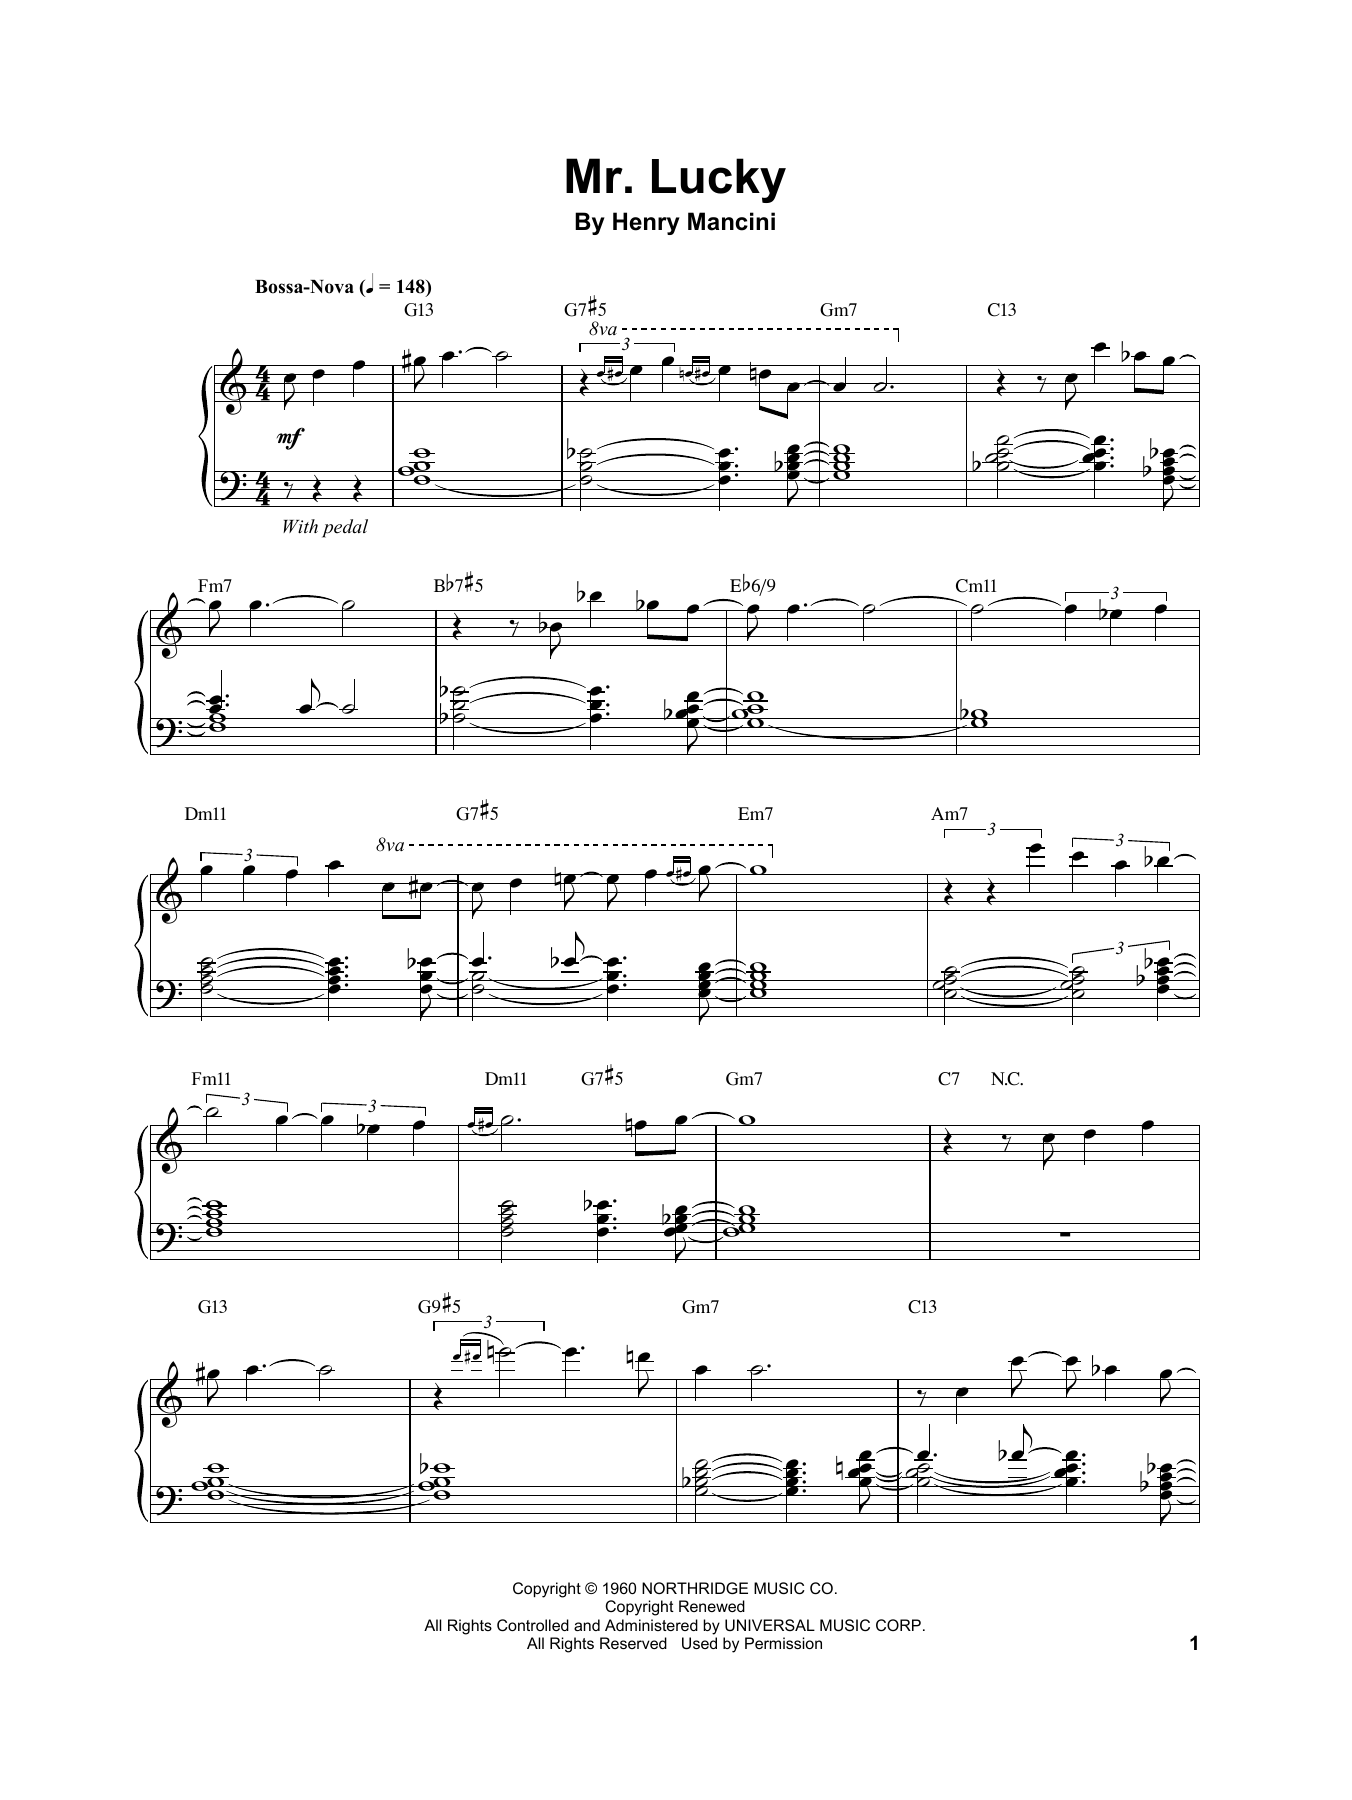 Vince Guaraldi Mr. Lucky sheet music notes and chords. Download Printable PDF.